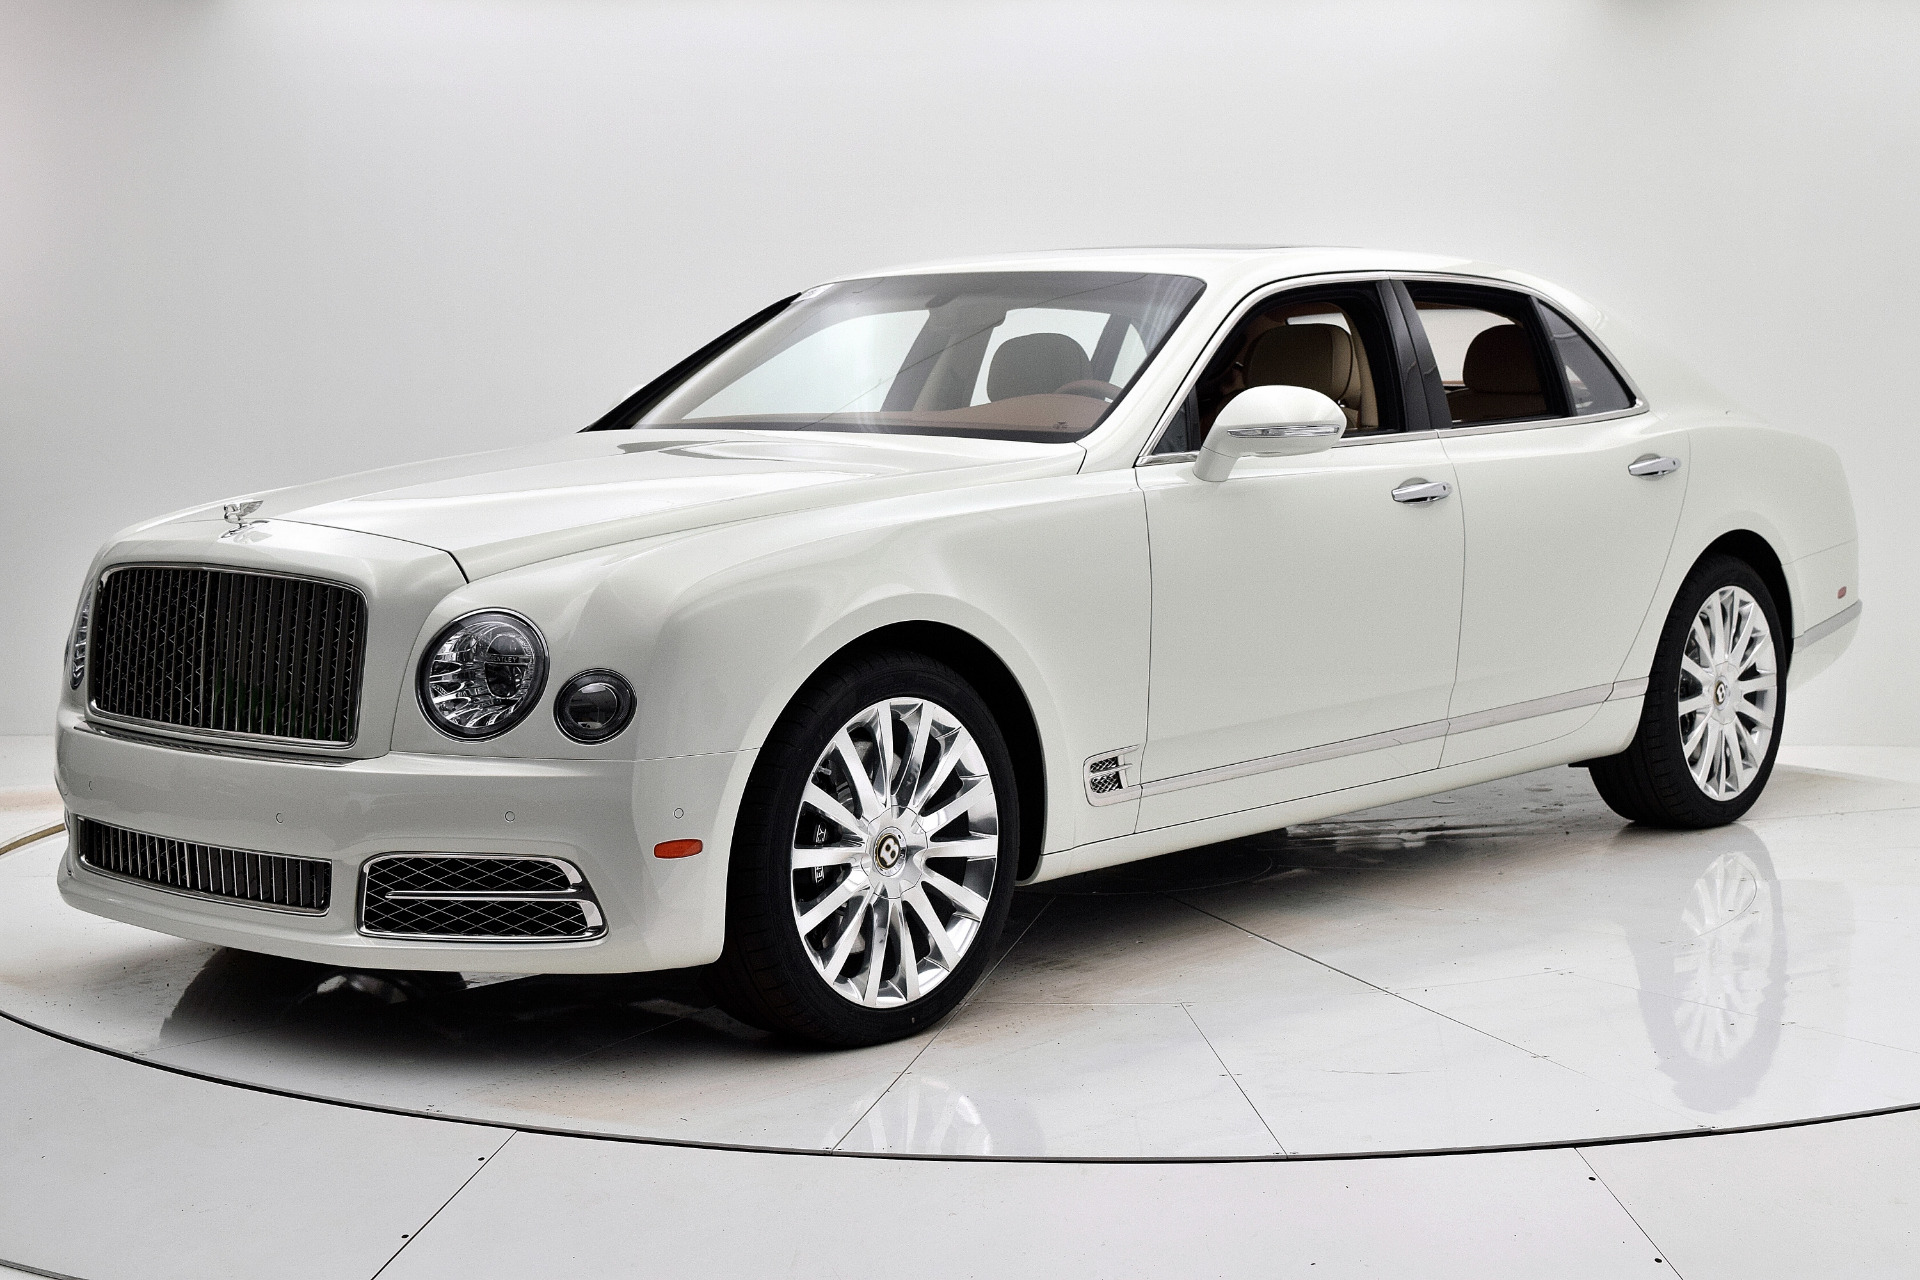 New 2020 Bentley Mulsanne for sale $371,245 at Bentley Palmyra N.J. in Palmyra NJ 08065 2